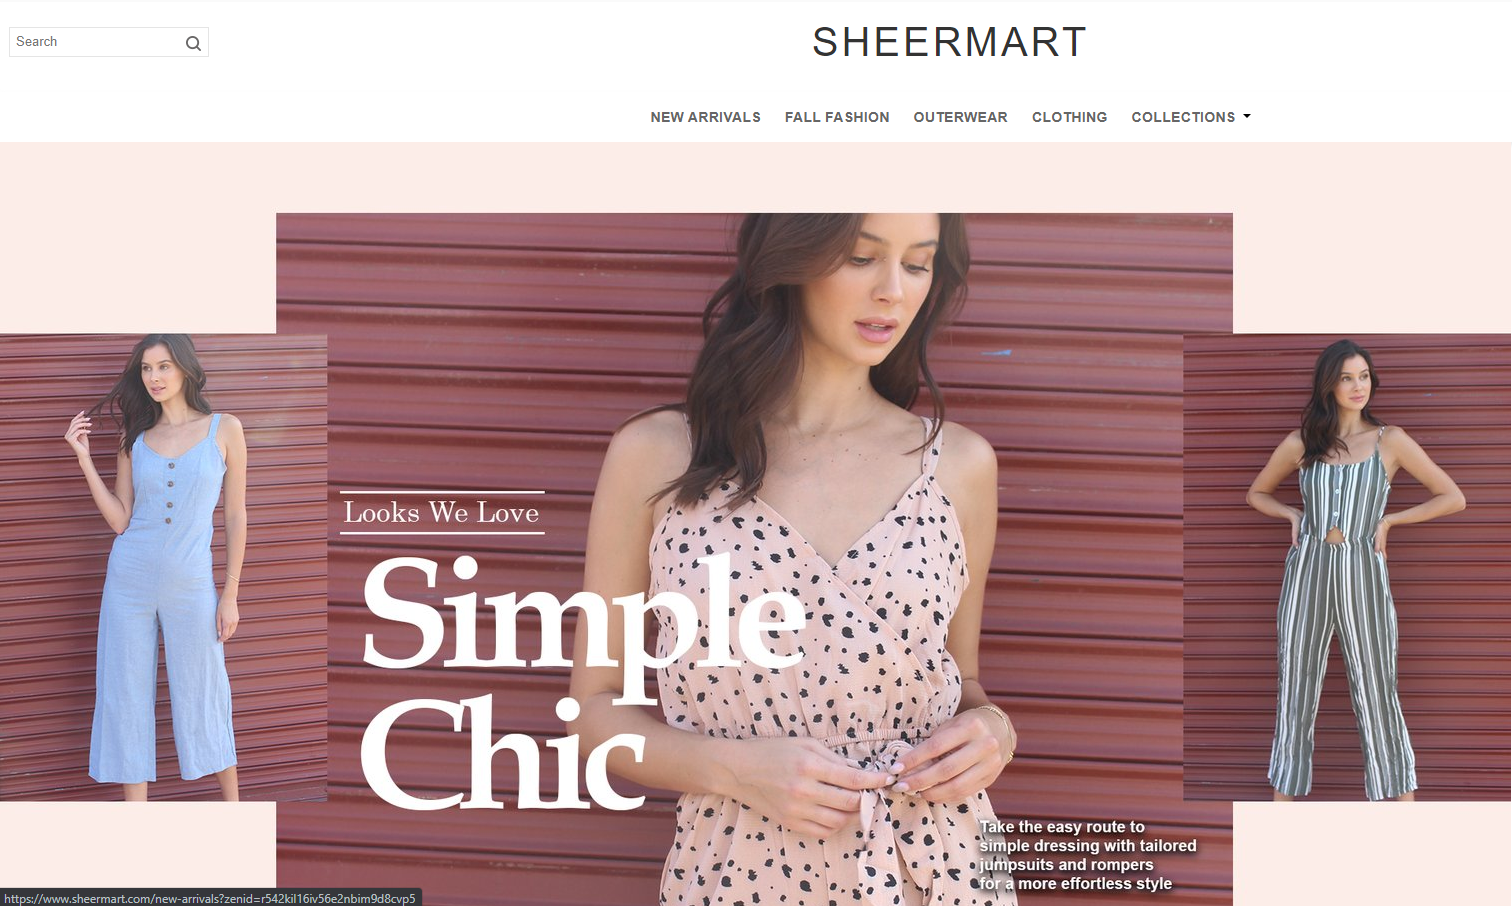 sheermart phishing scam home page